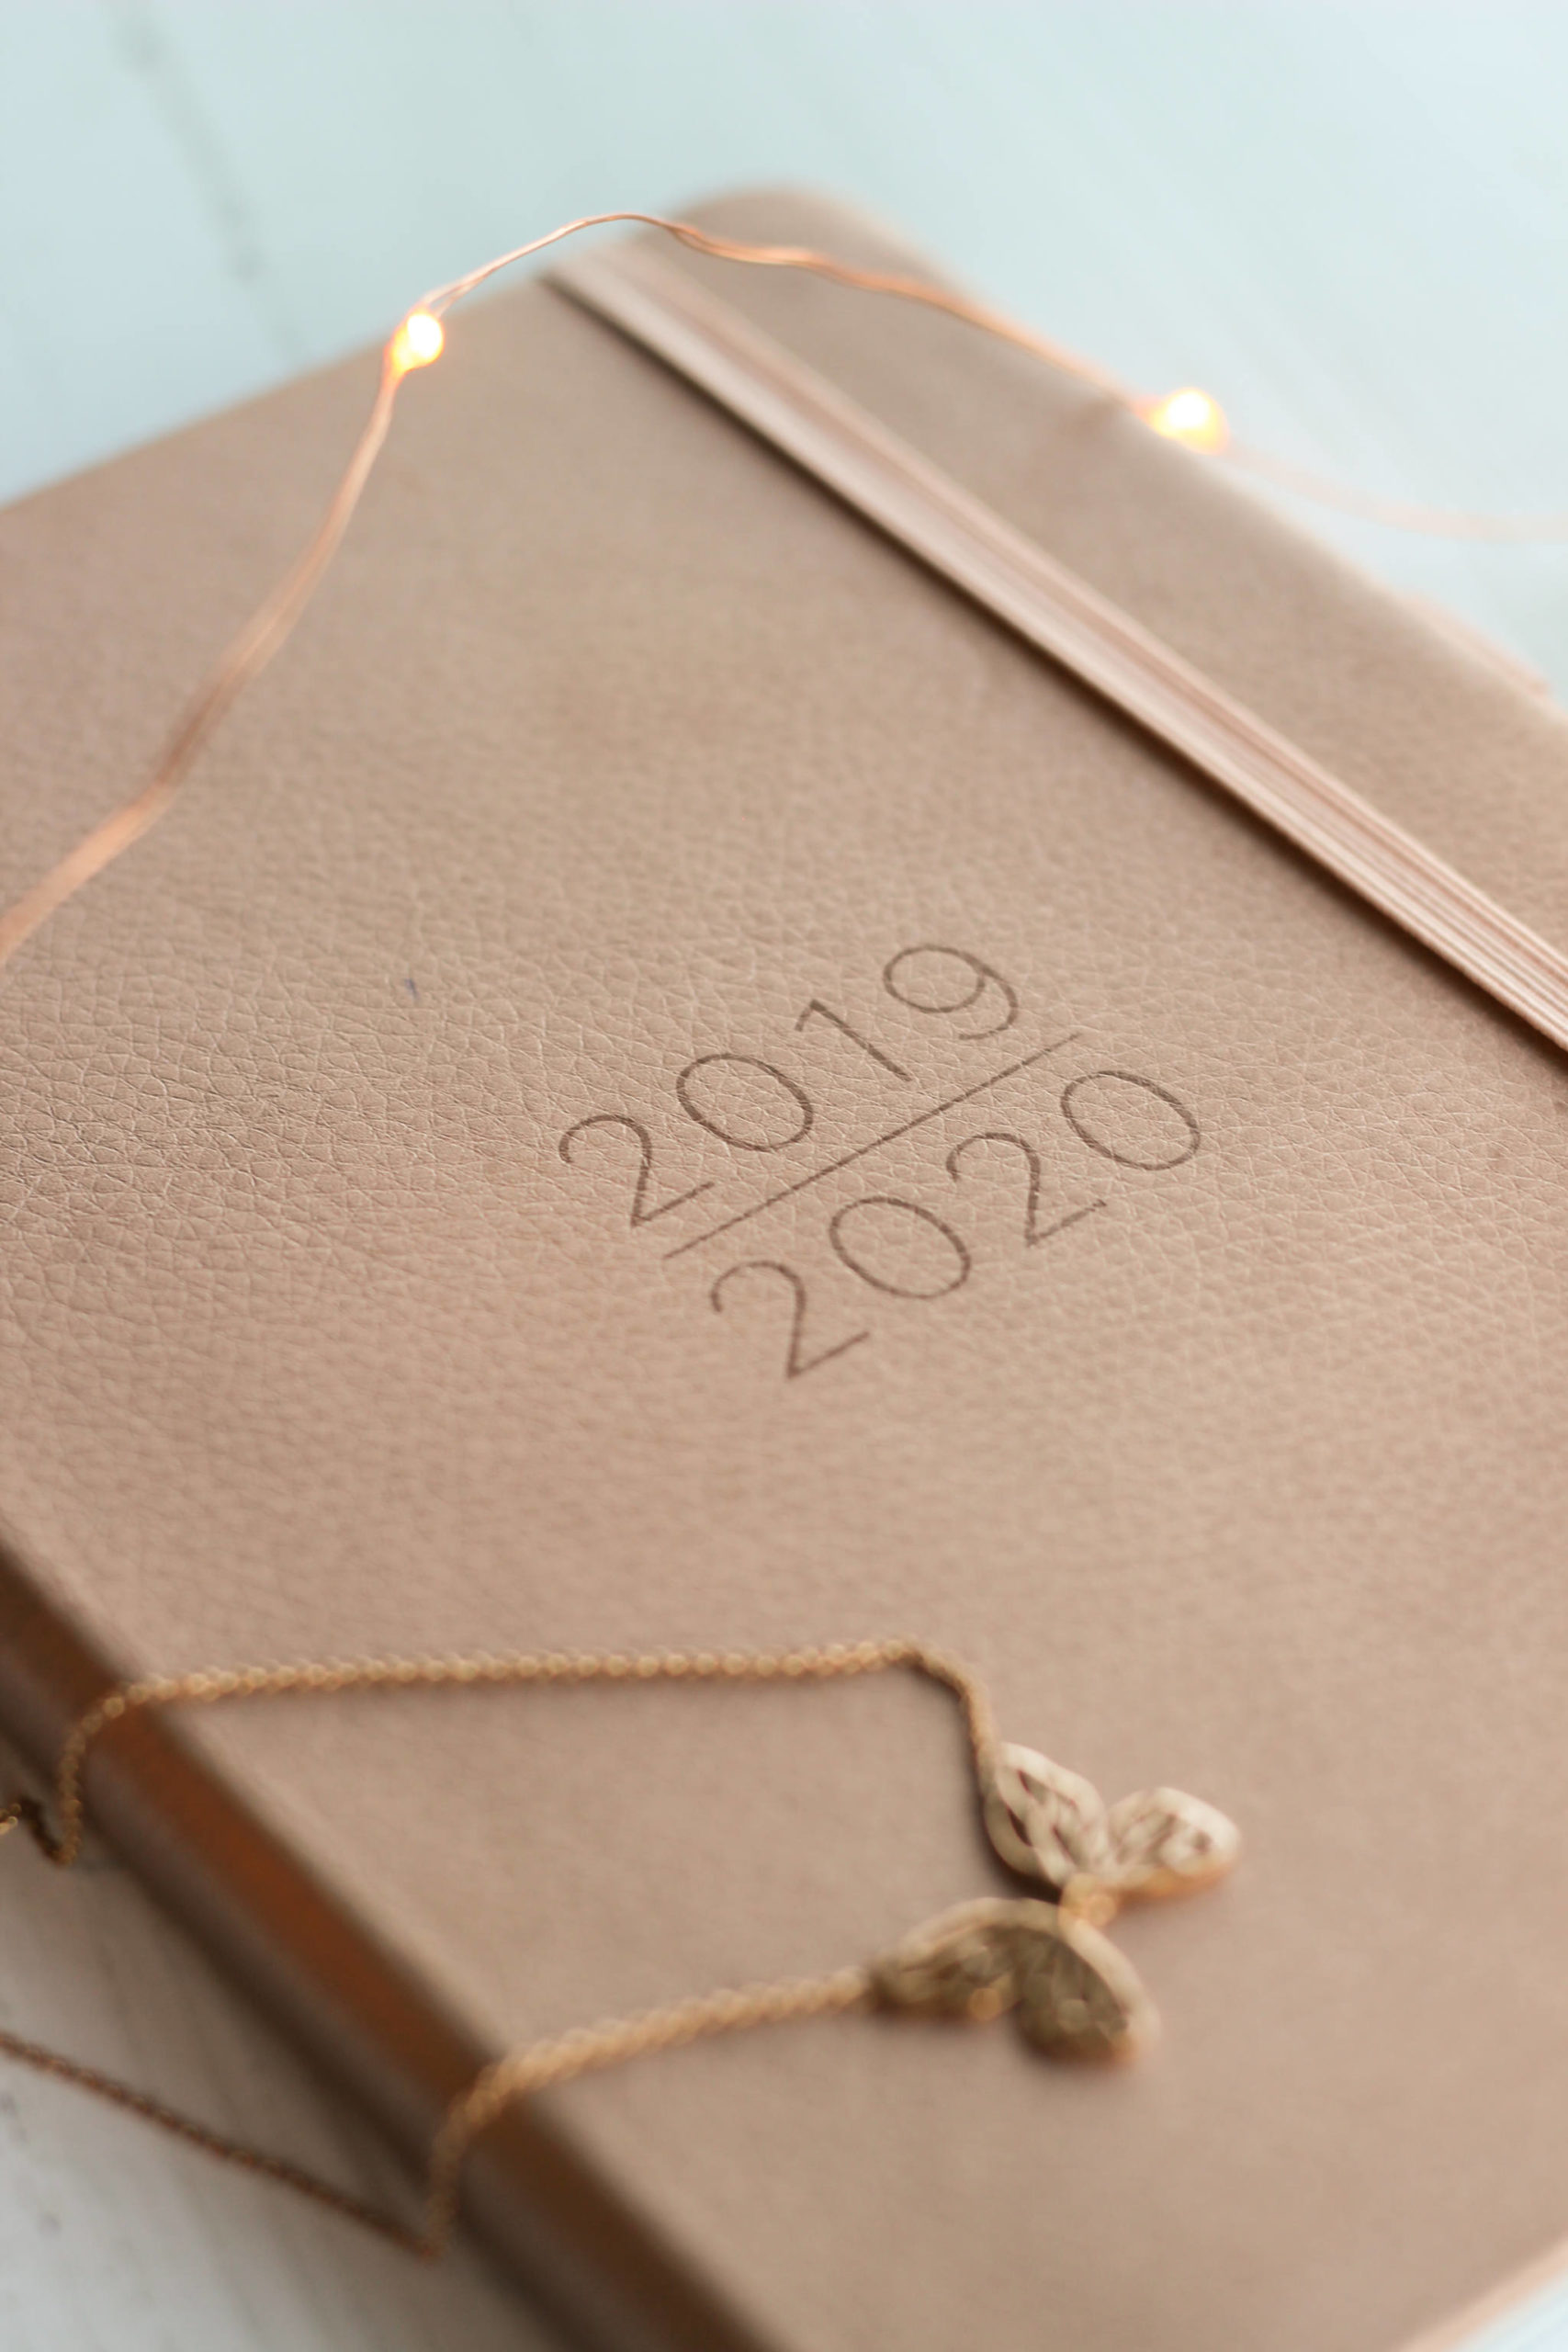 2019/2020 Rose Gold Diary, With Rose Gold lights and necklace